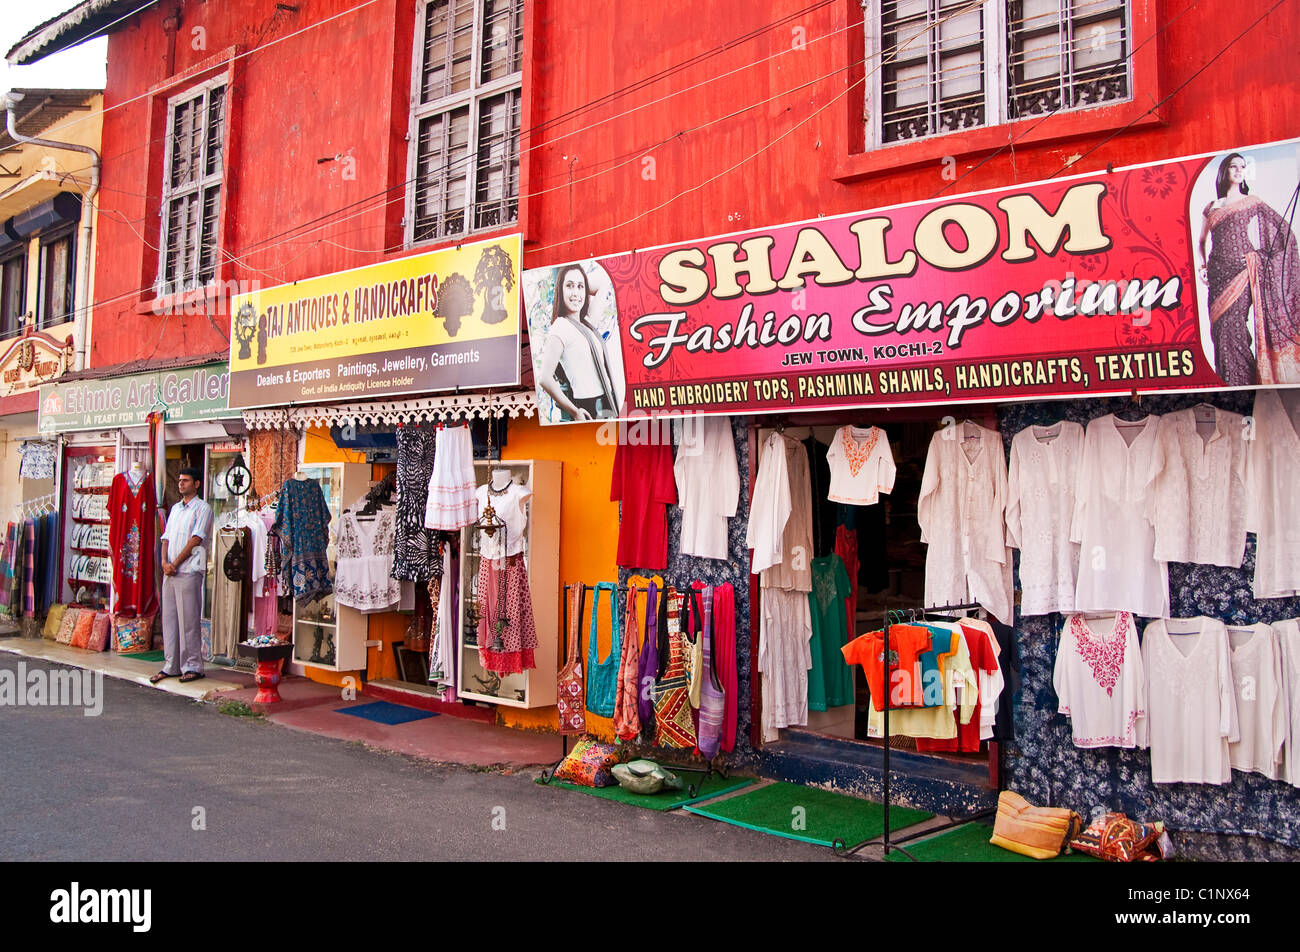 Tourist shops in Jew Town section of Cochin (Kochi) - Stock Image